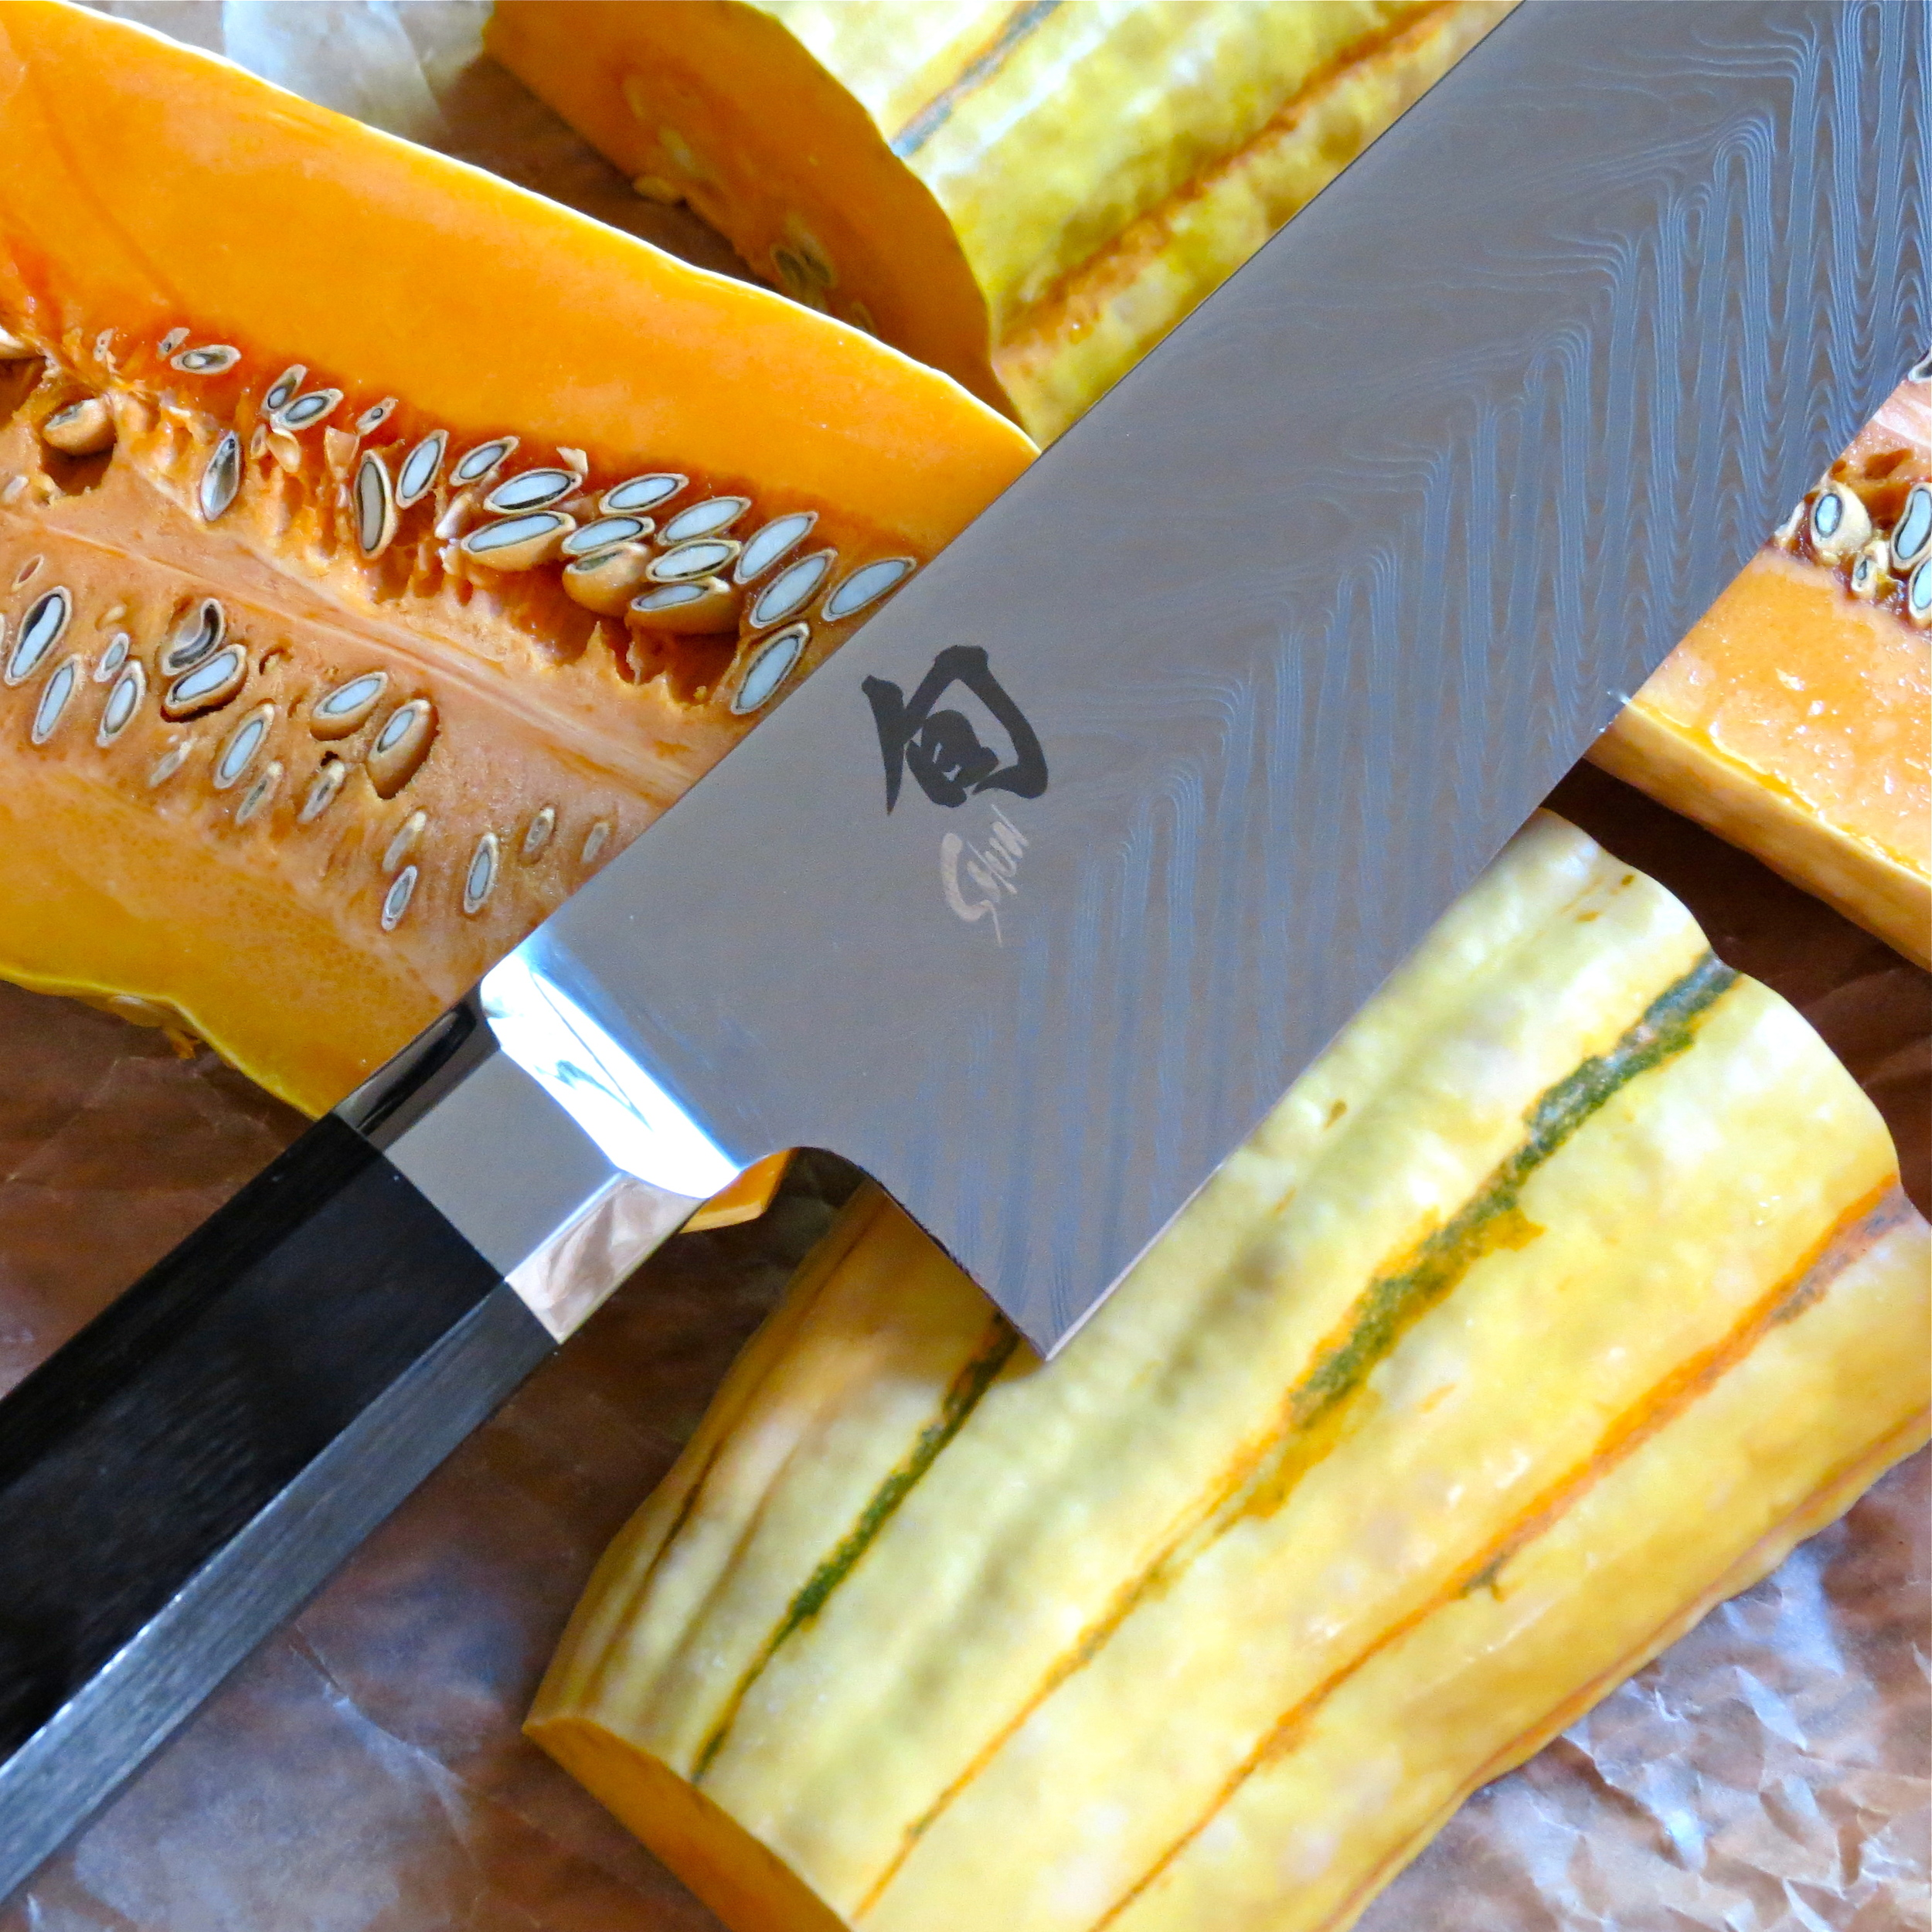 Precise, clean slices with a    Shun